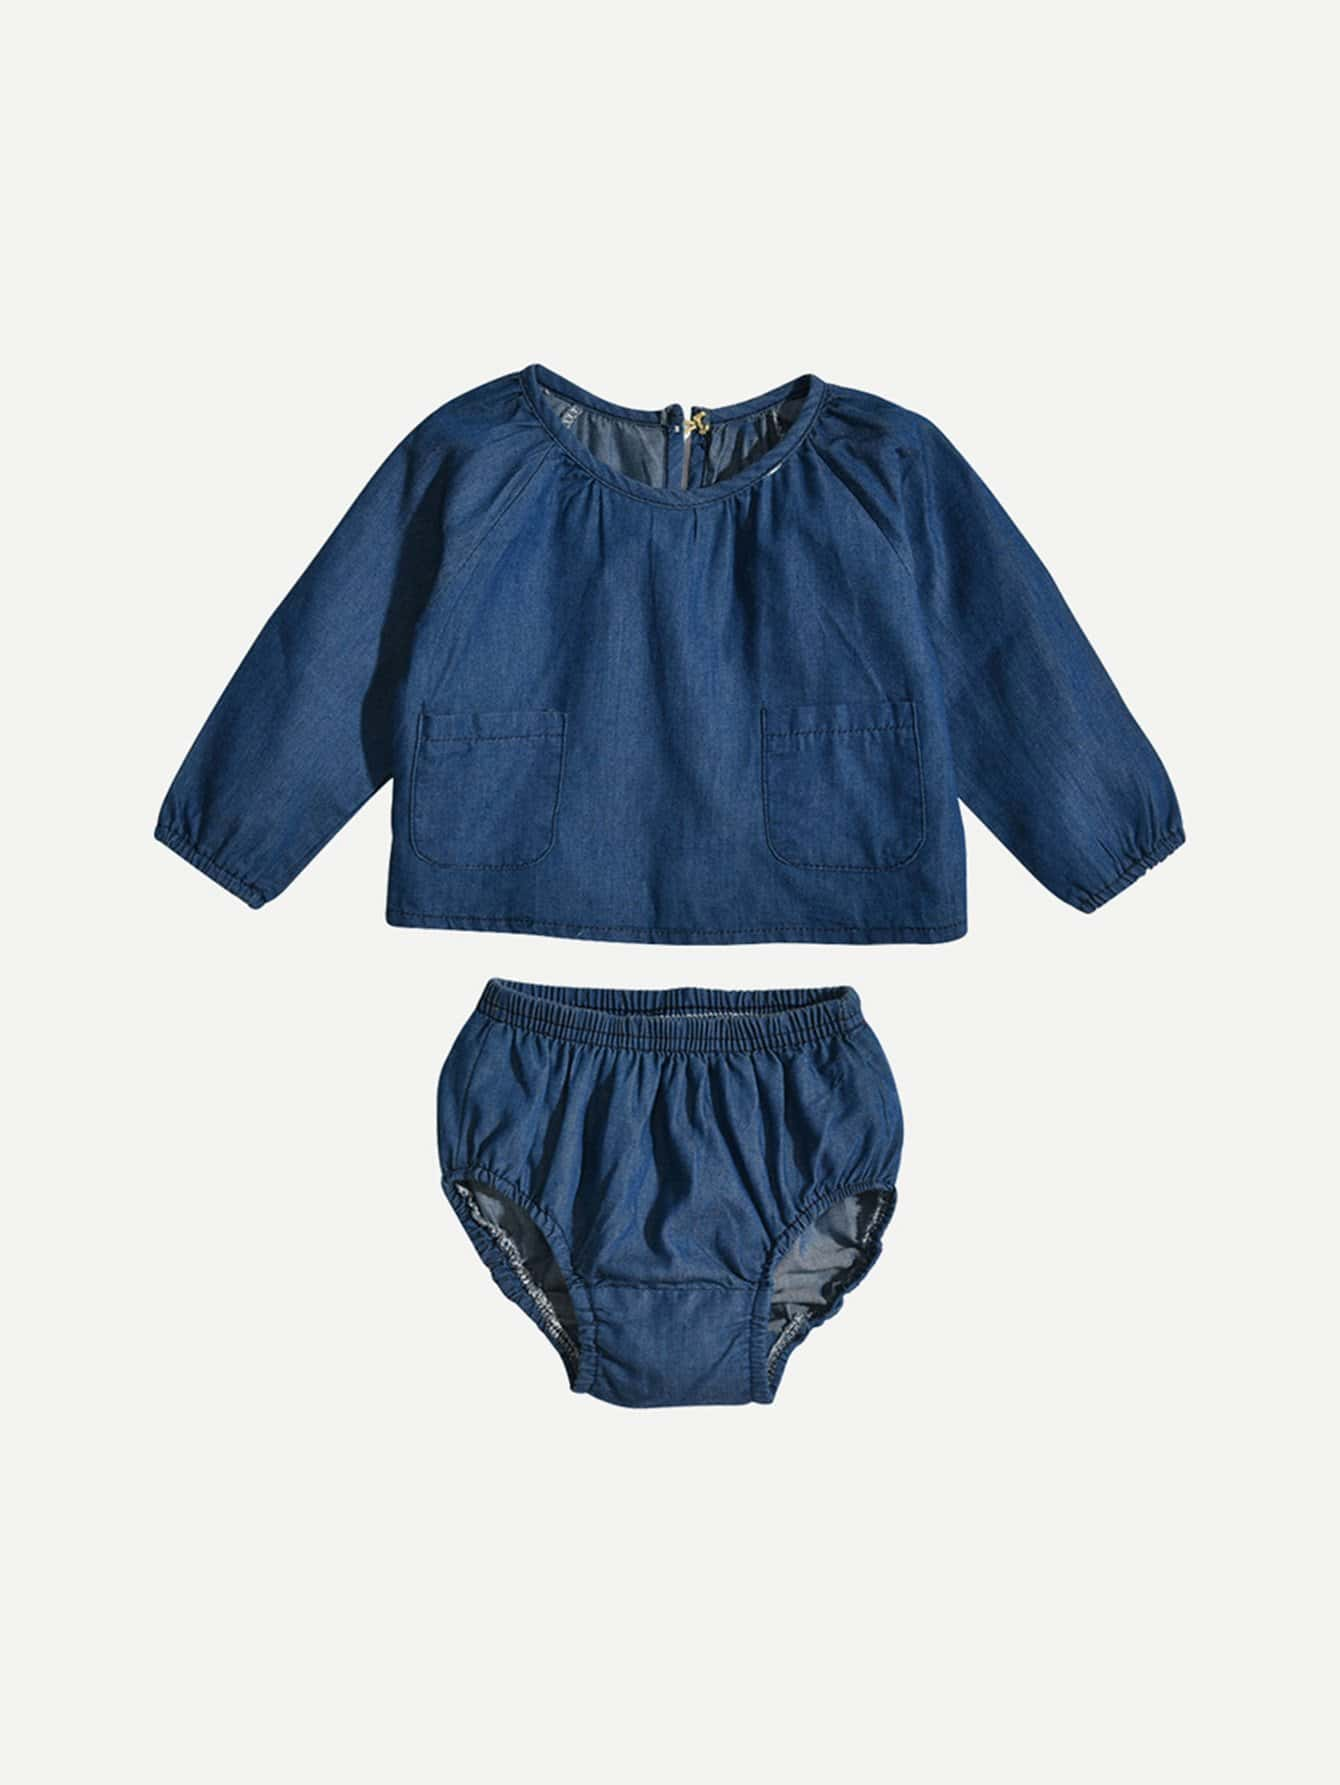 Baby Dual Pocket Denim Top With Shorts